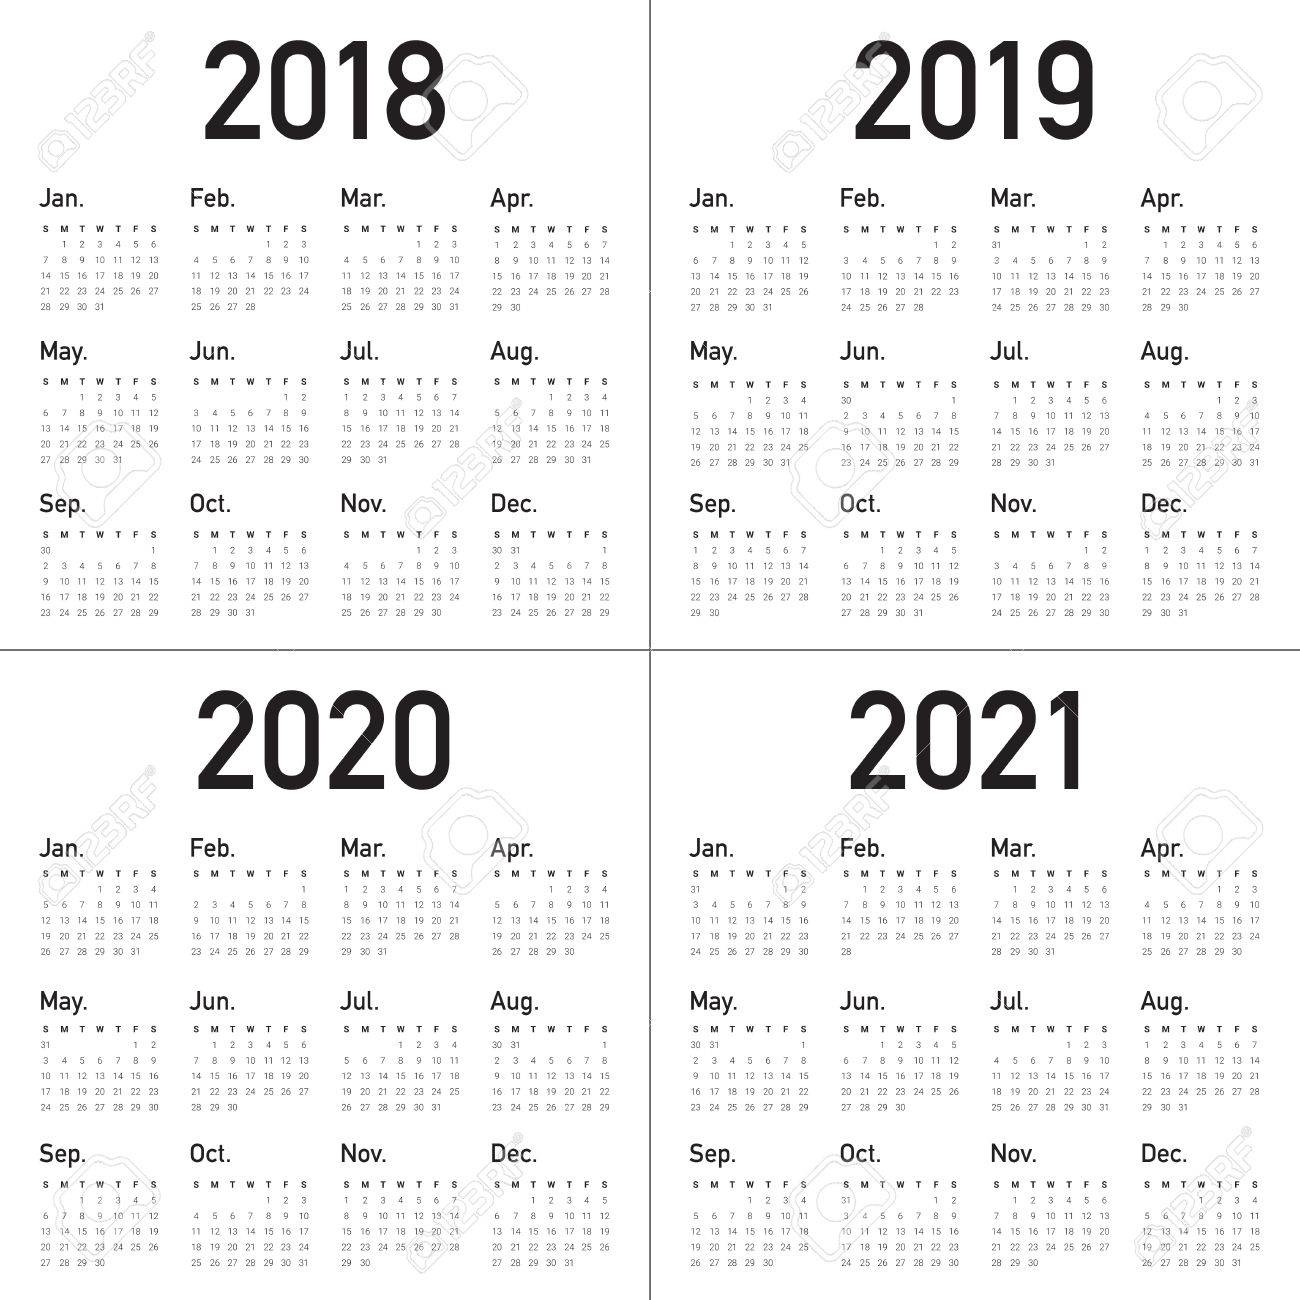 Year 2018 2019 2020 2021 Calendar Vector Design Template, Simple within Calendars 2019 2020 2021